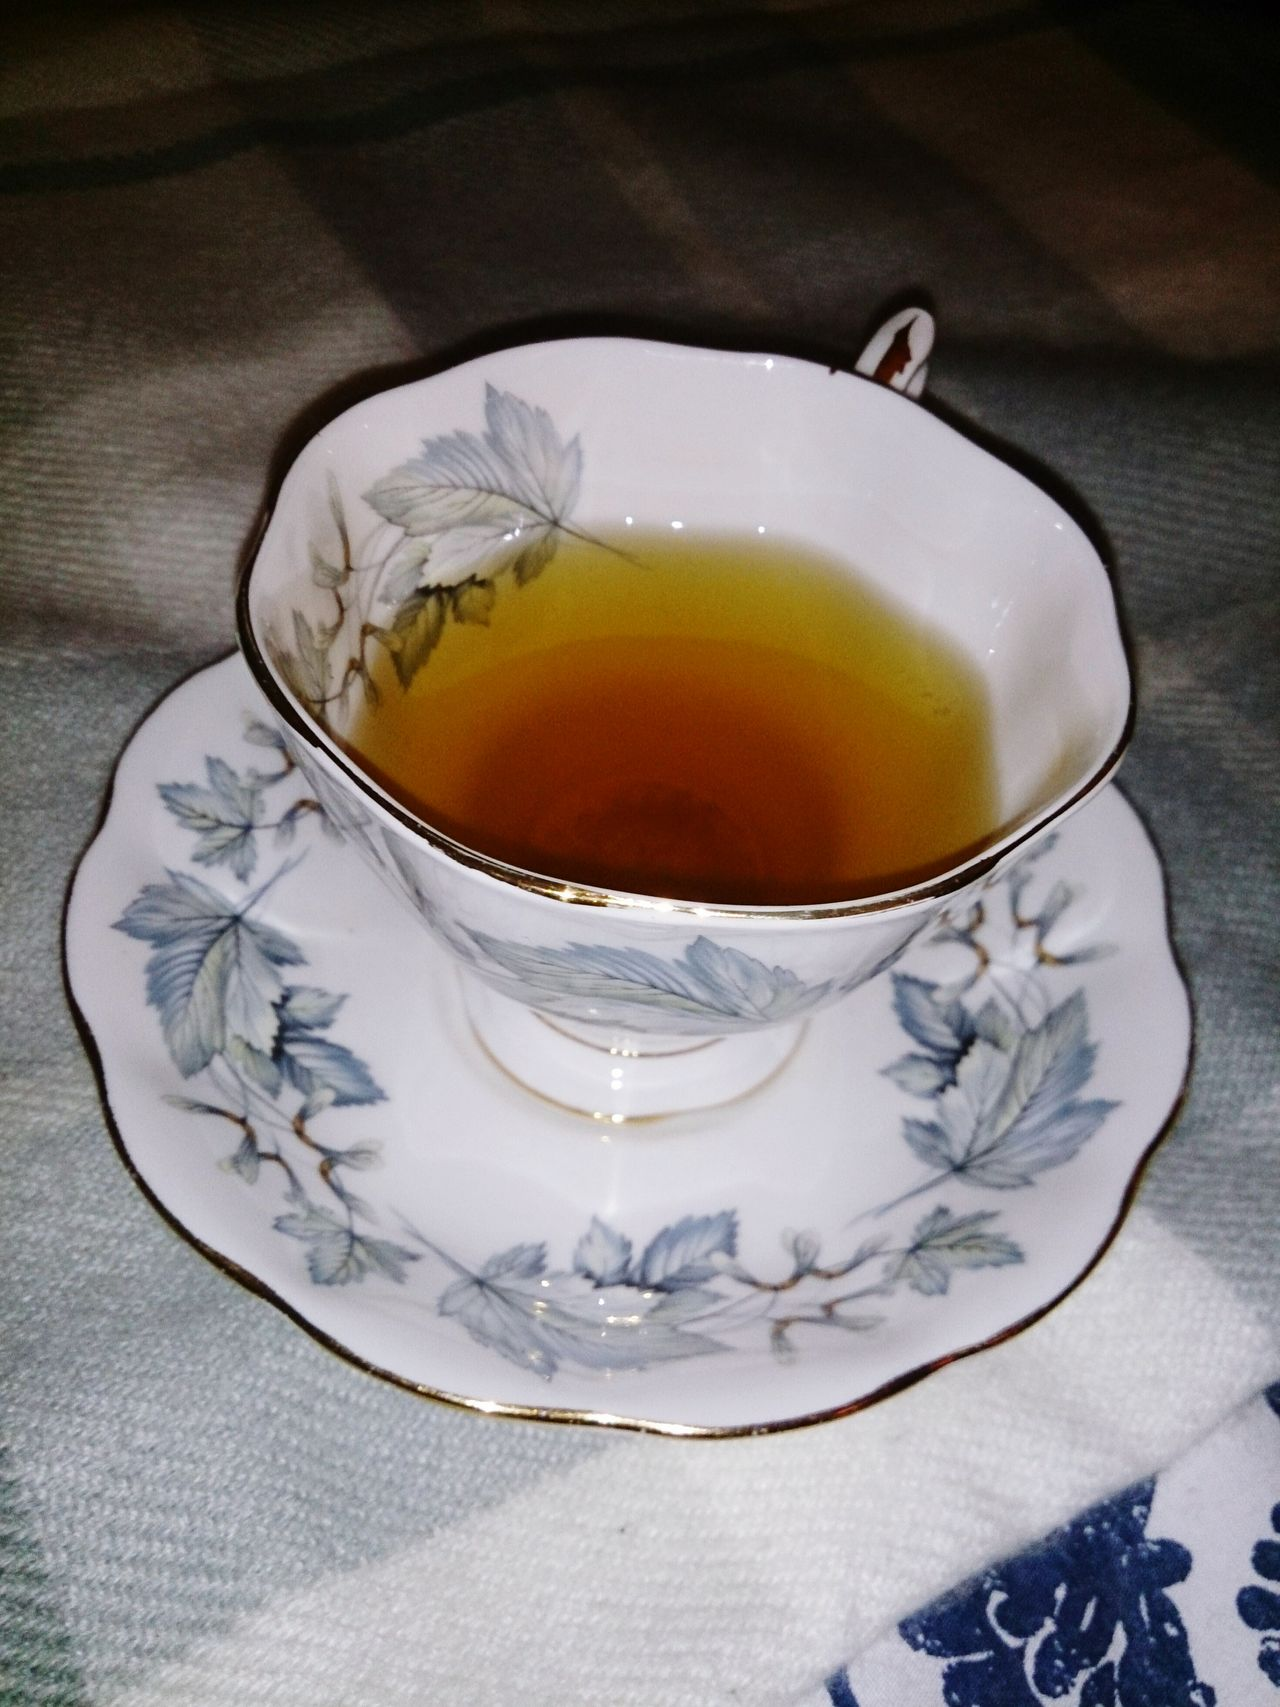 Photographic Memory Camomile Tea Lieblingsteil